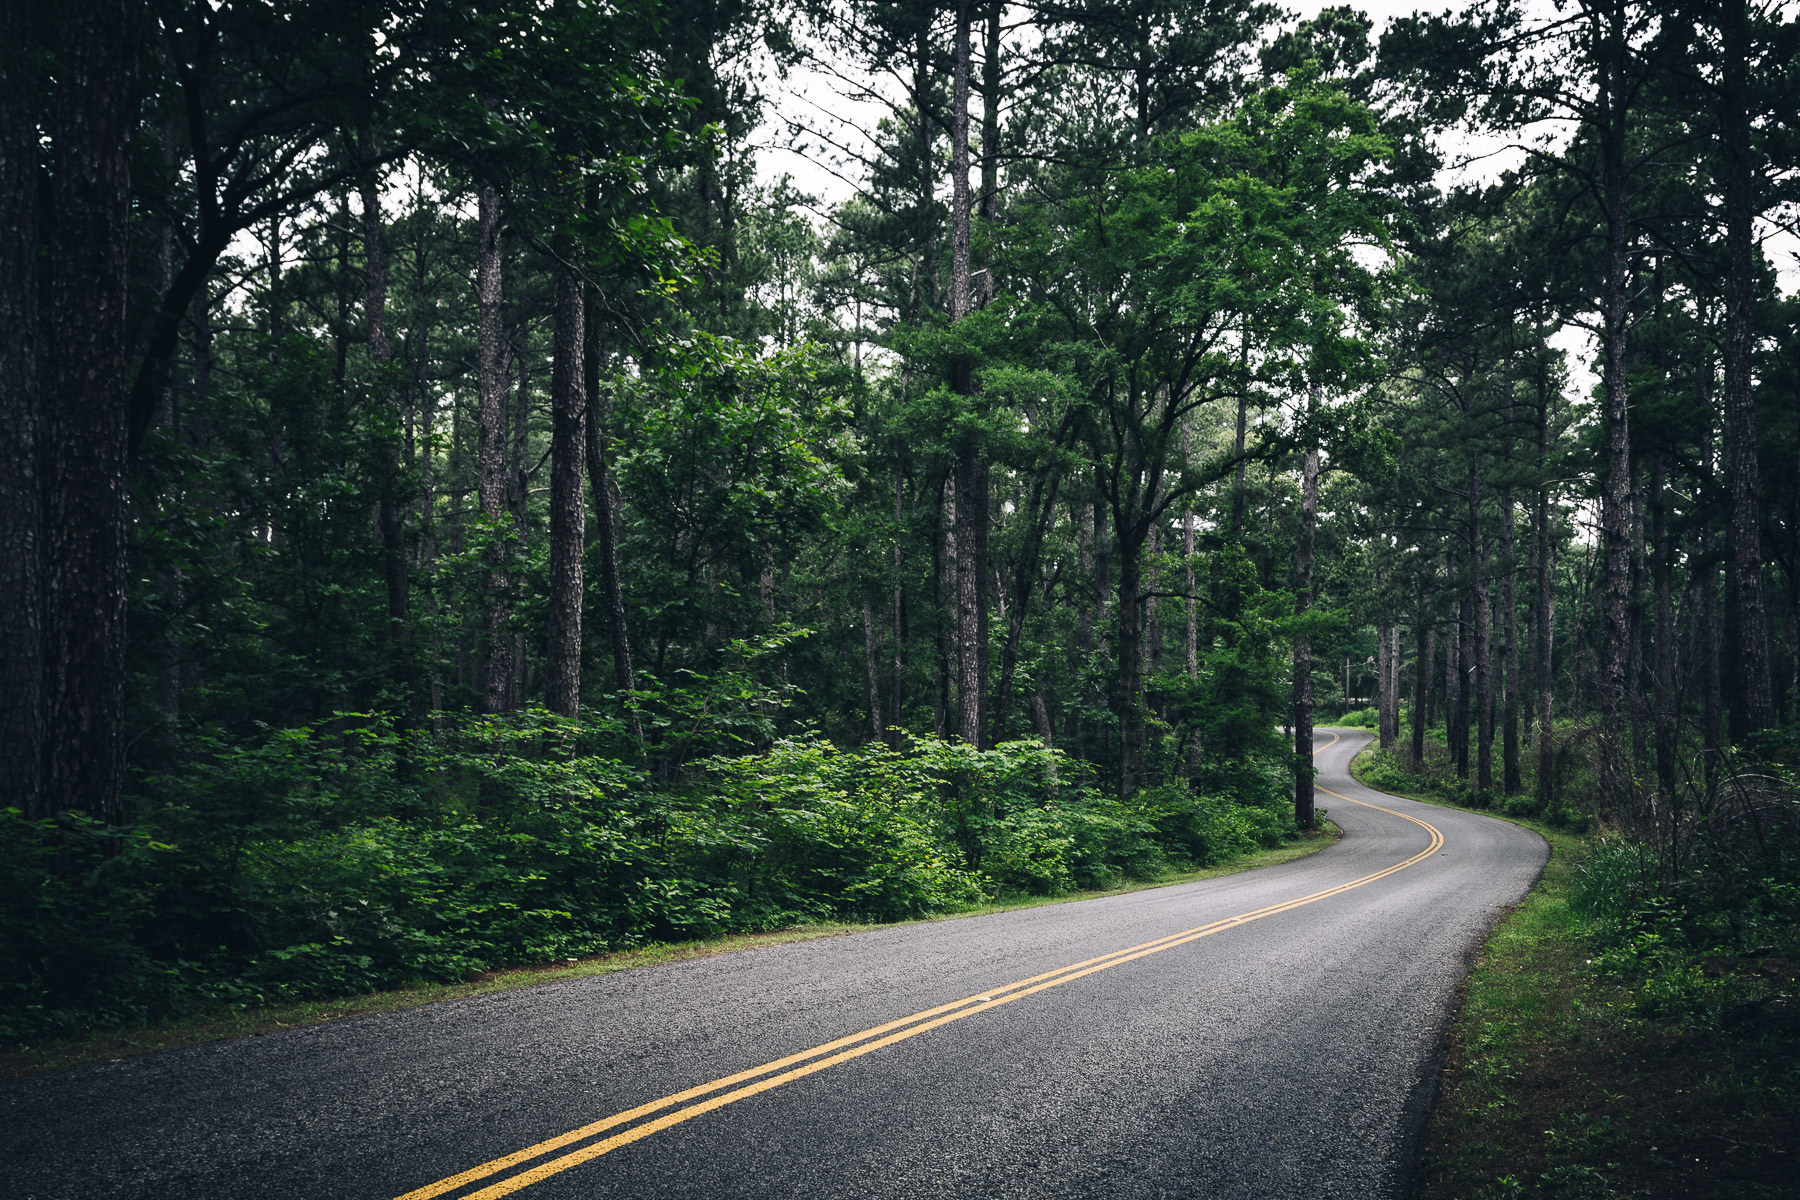 A road curves through the pine tree forest at Tyler State Park, Texas.